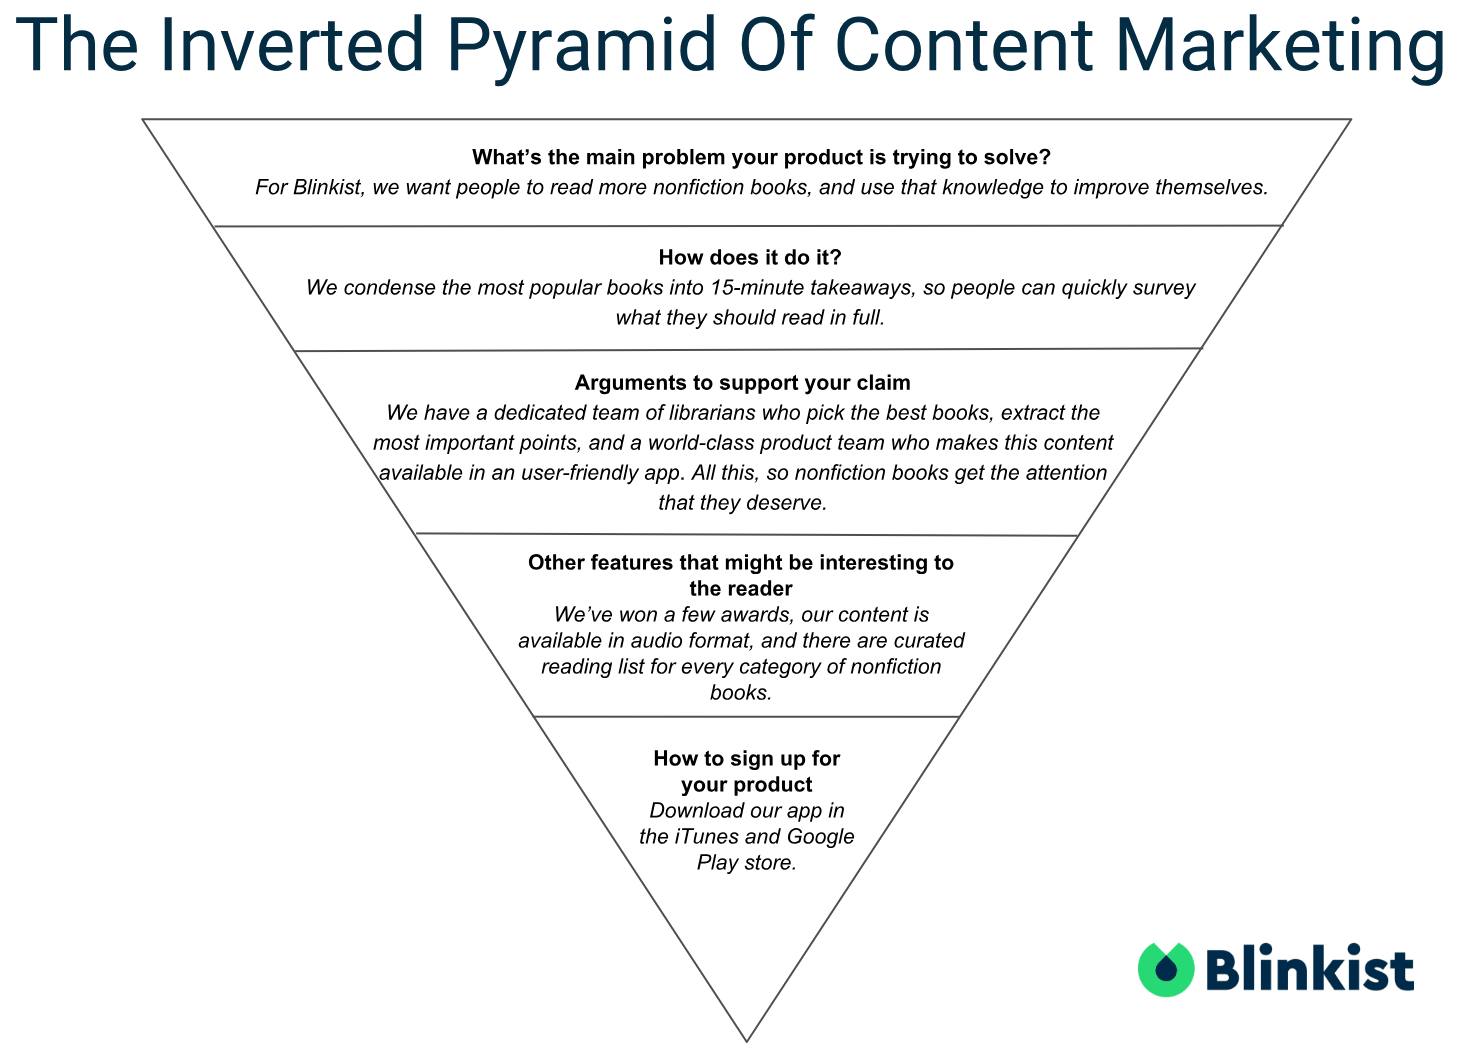 The Inverted Pyramid of Content Marketing